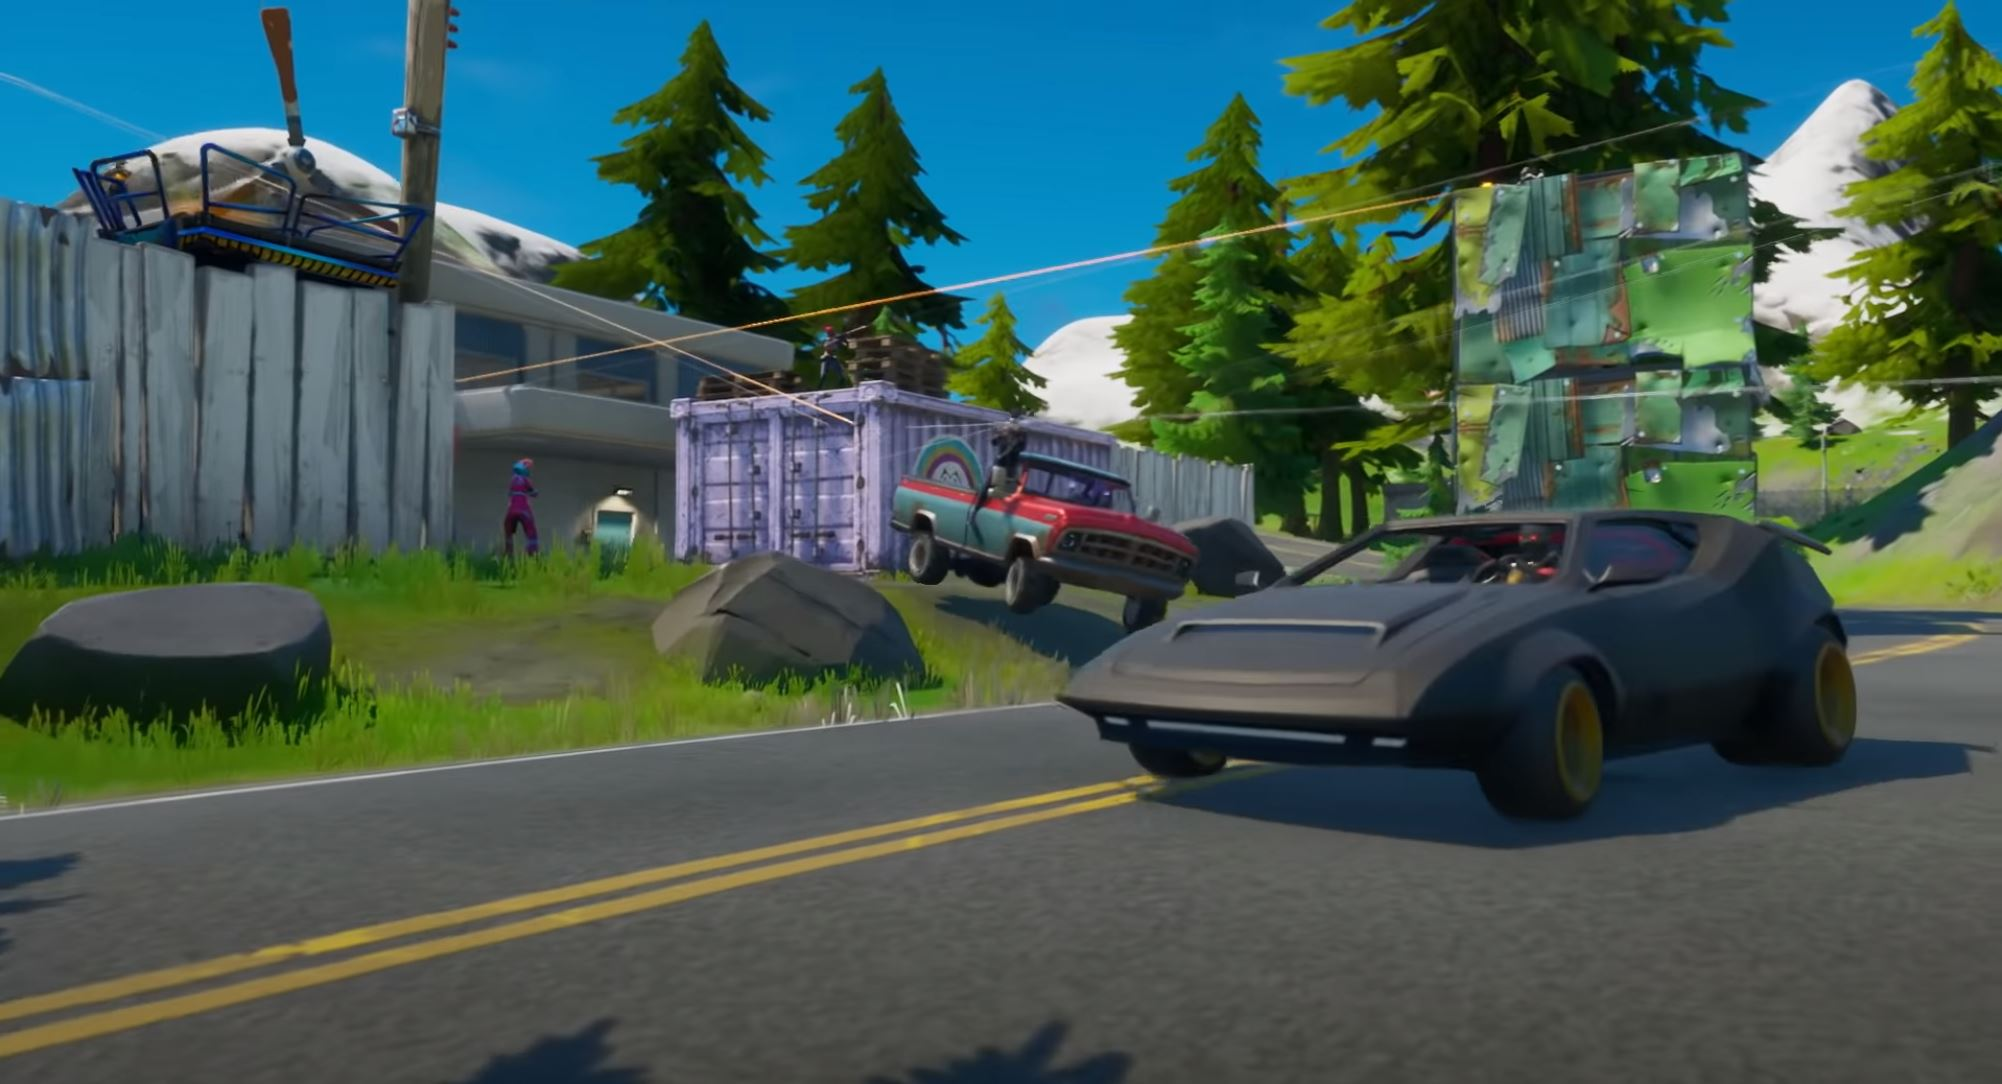 Fortnite Received New Map Changes Overnight